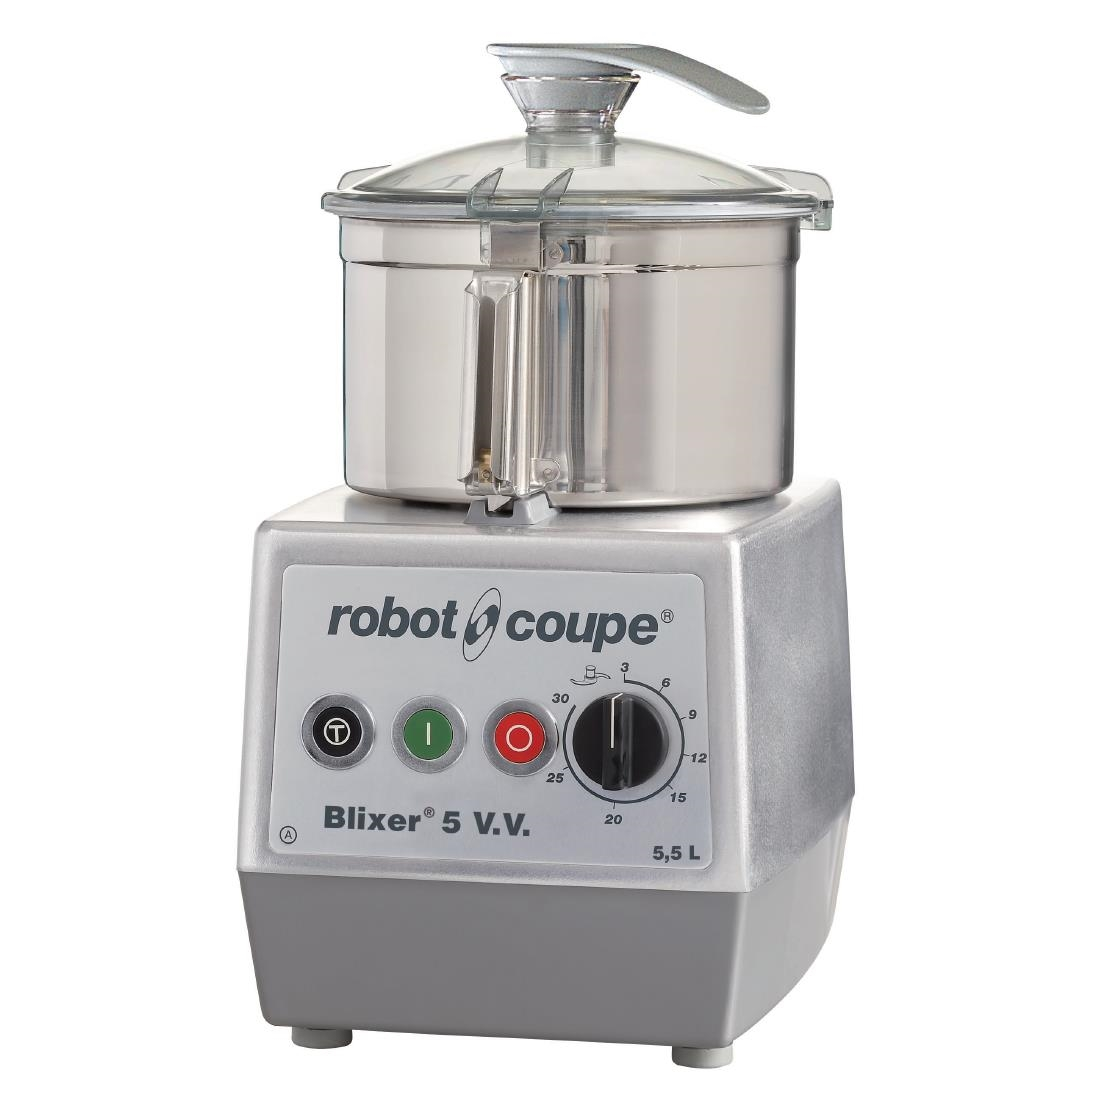 Image of Robot Coupe Blixer 5VV